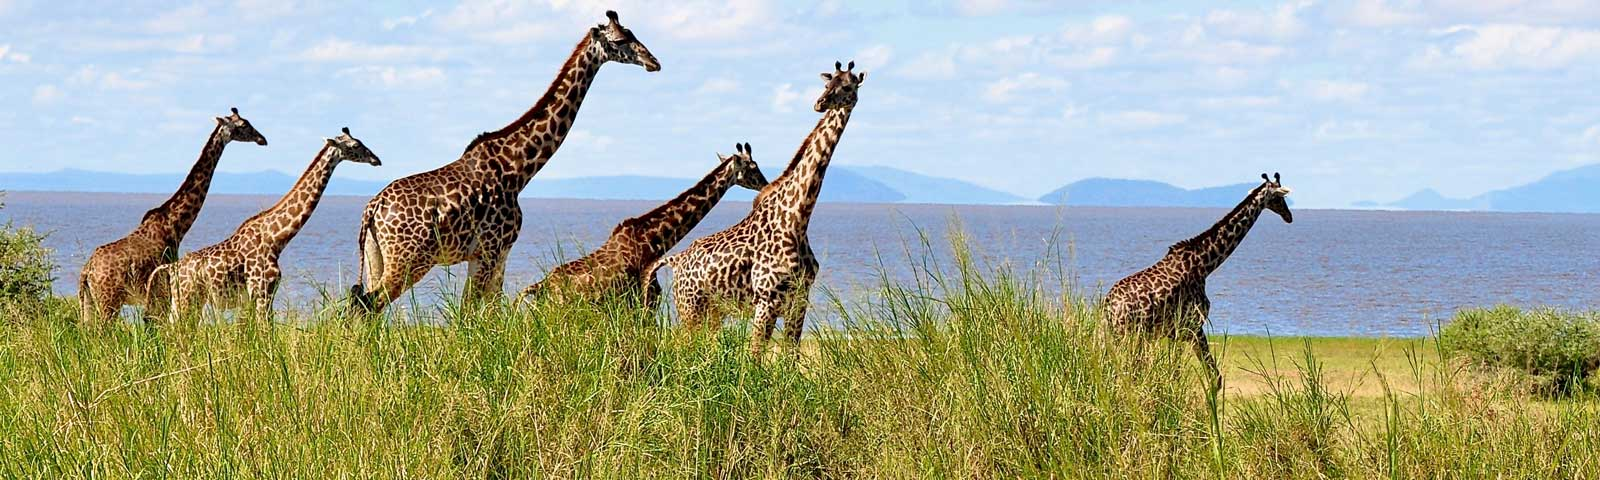 The Treasures of Tanzania: Safari & Zanzibar